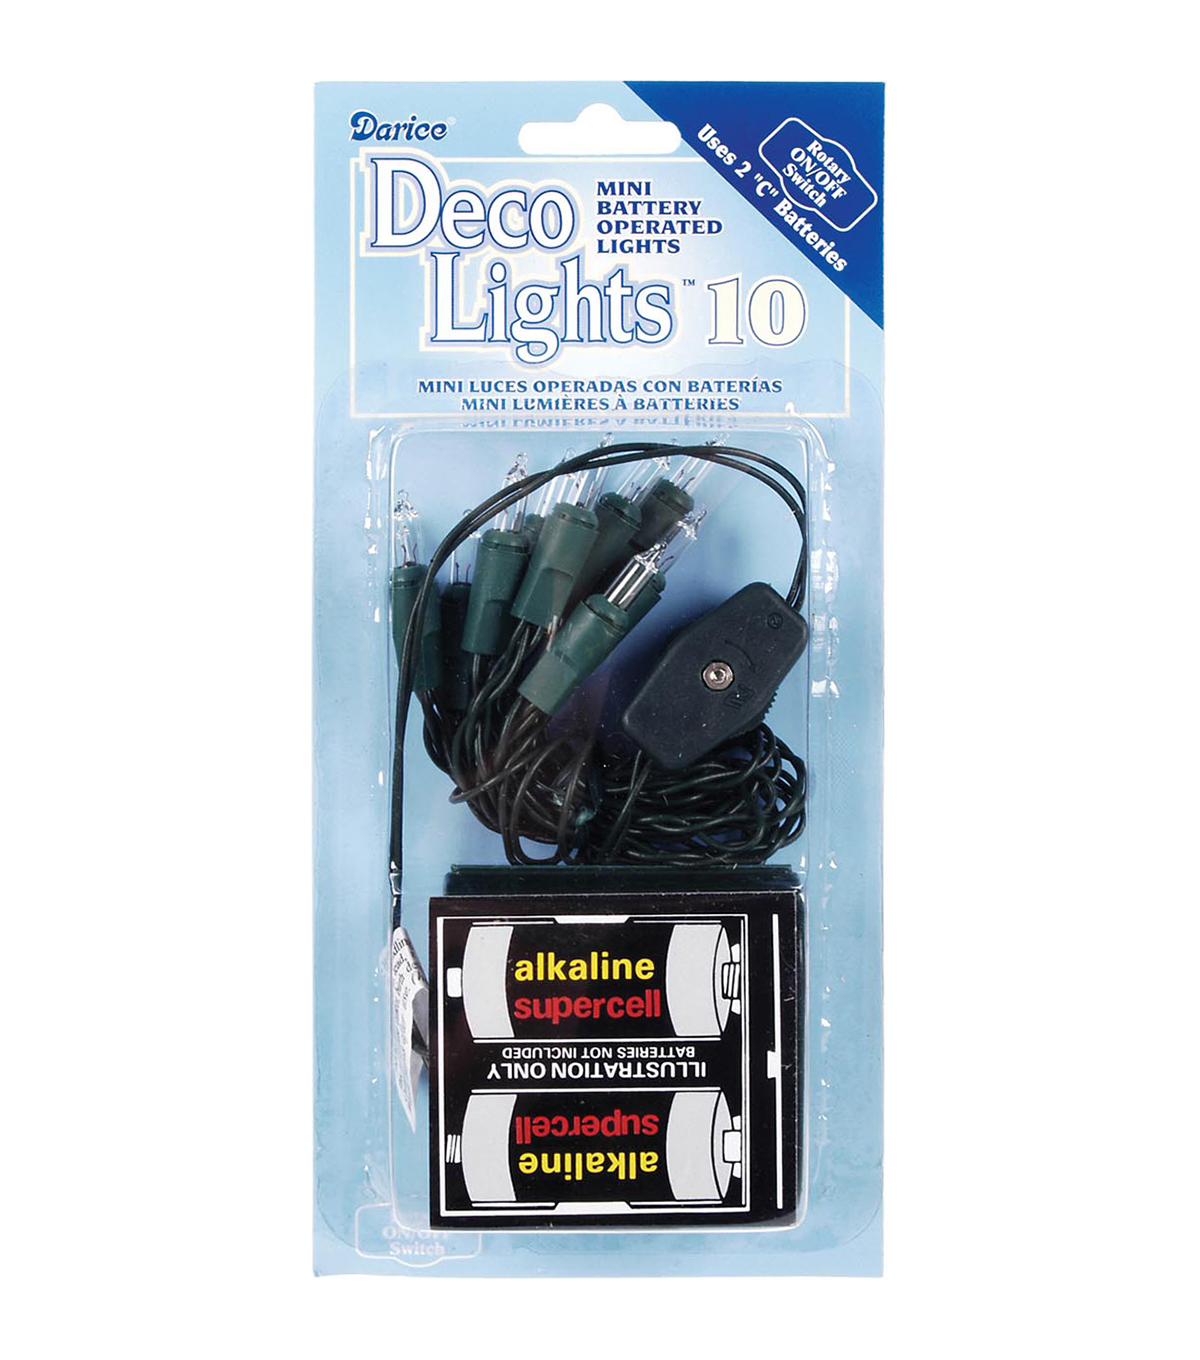 Darice® DecoLights 10 Clear Bulbs Light Set-Green Cord